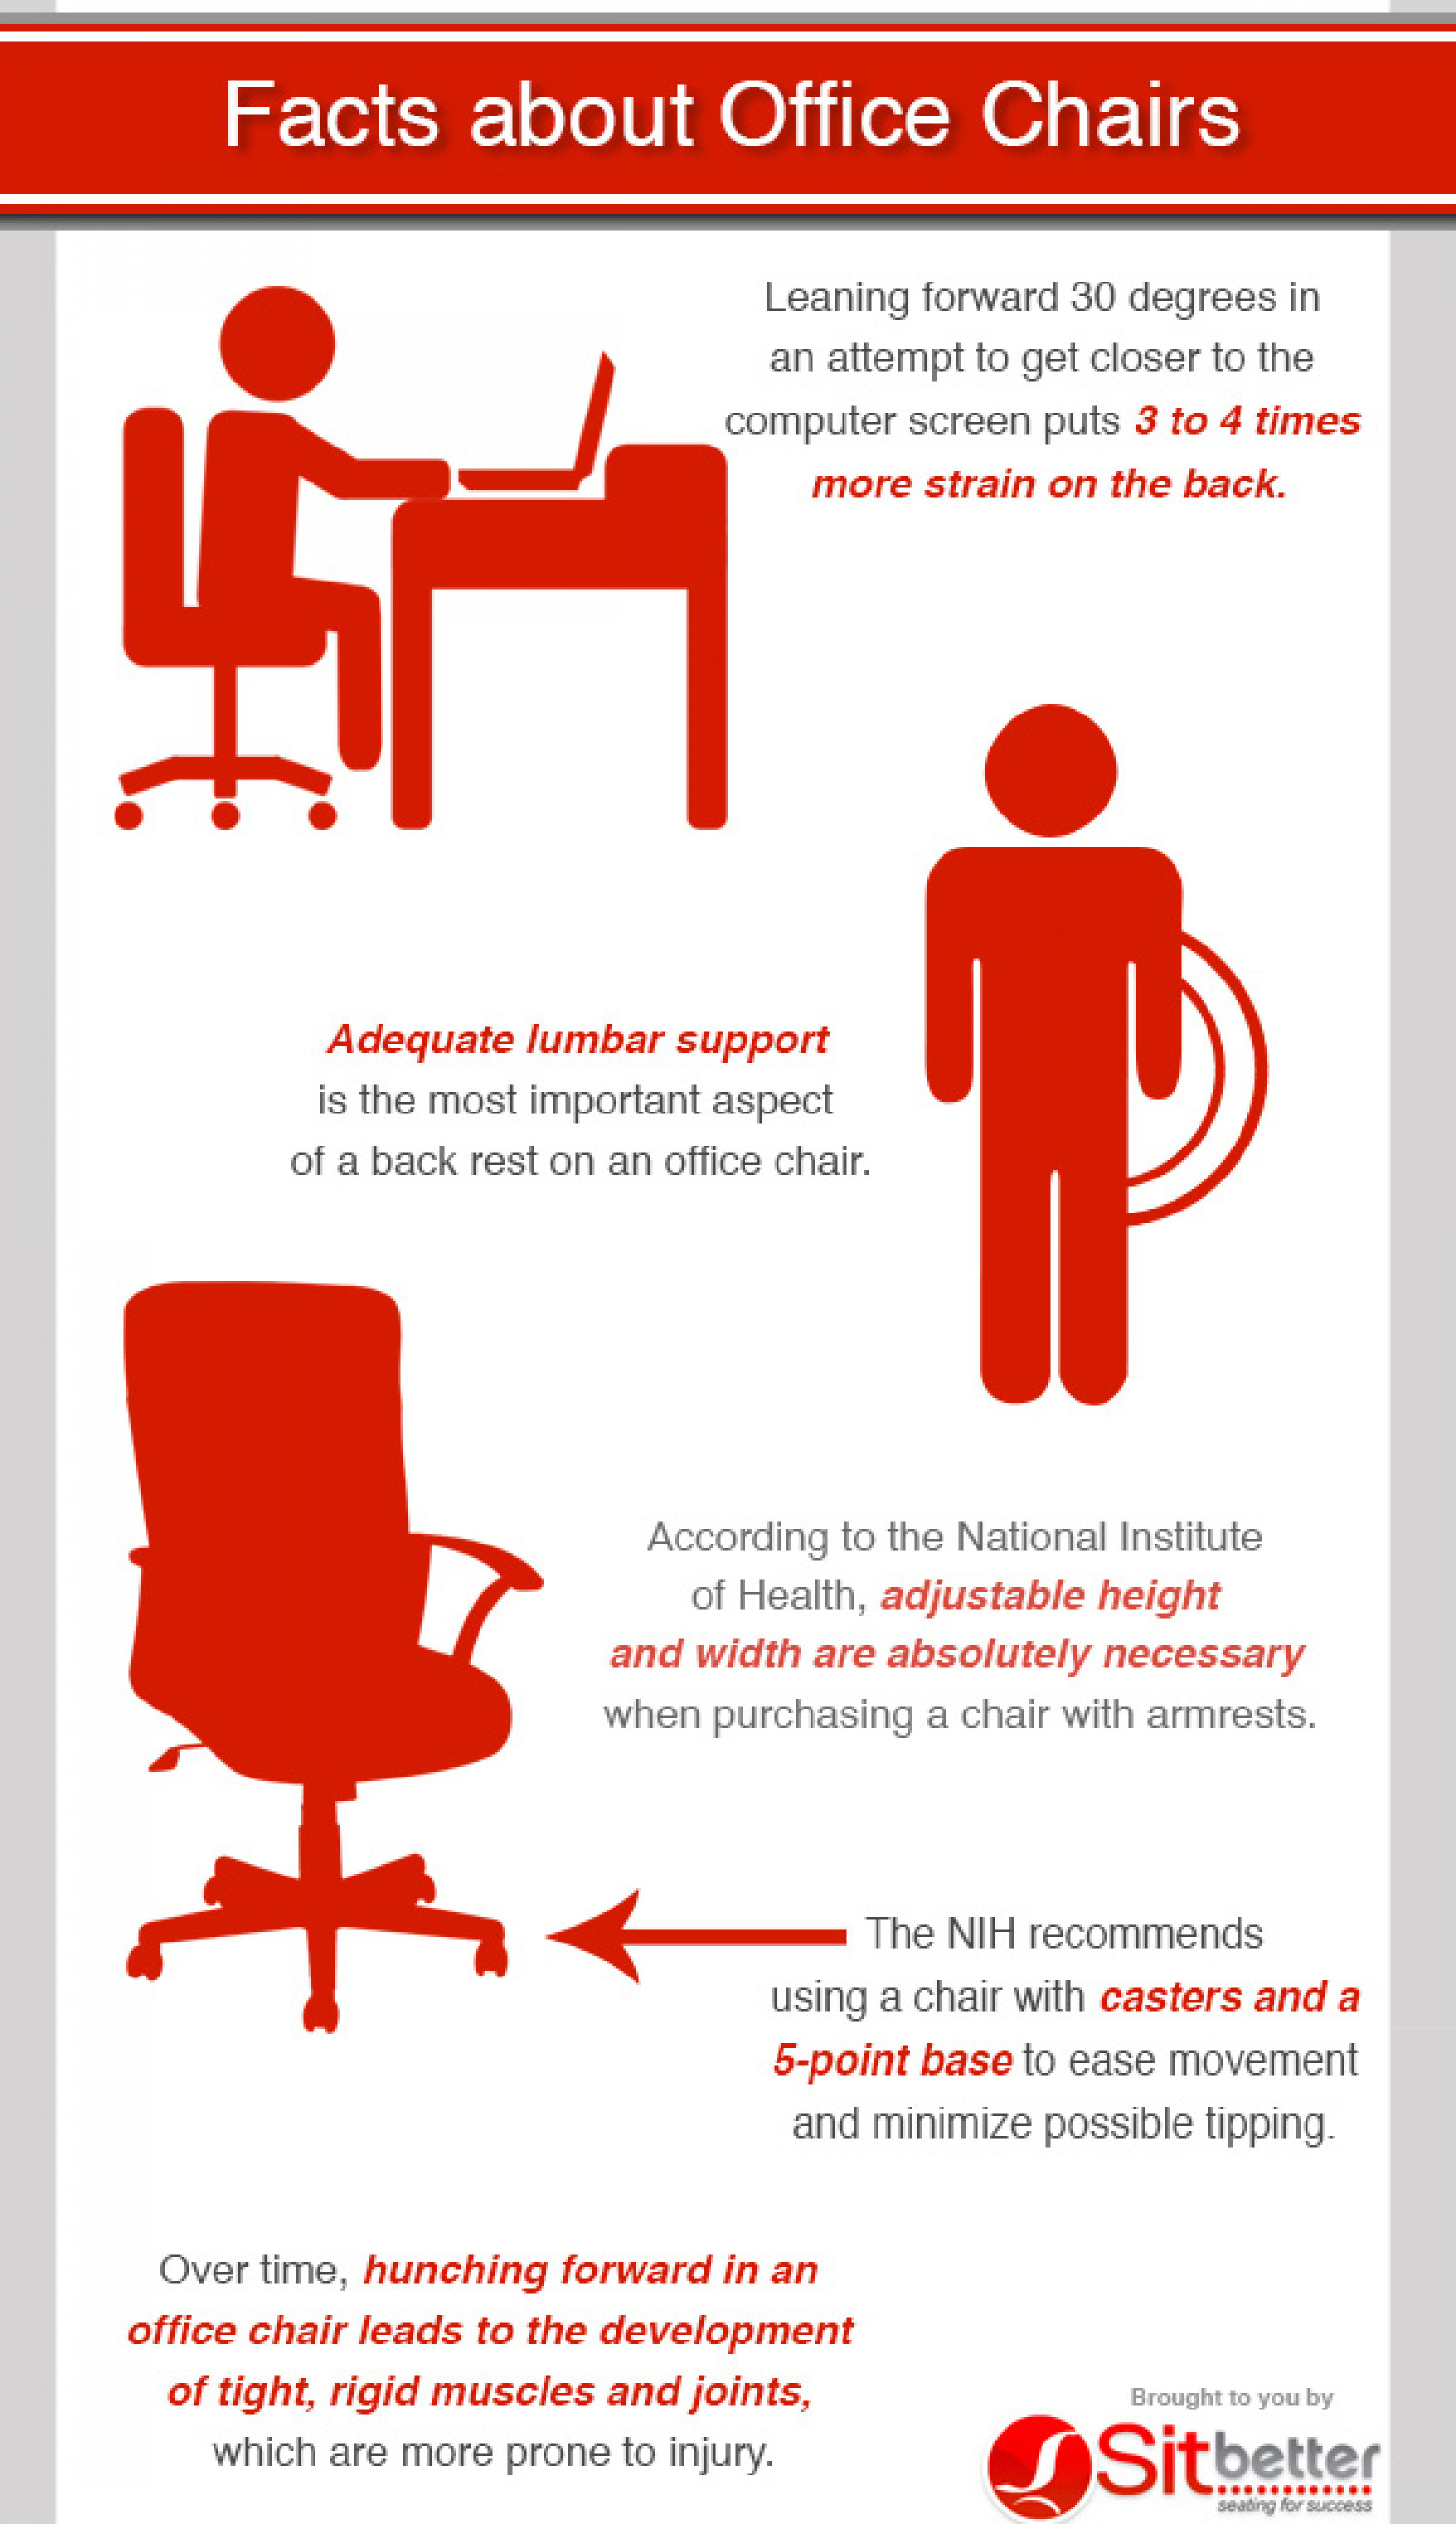 Facts About Office Chairs Infographic